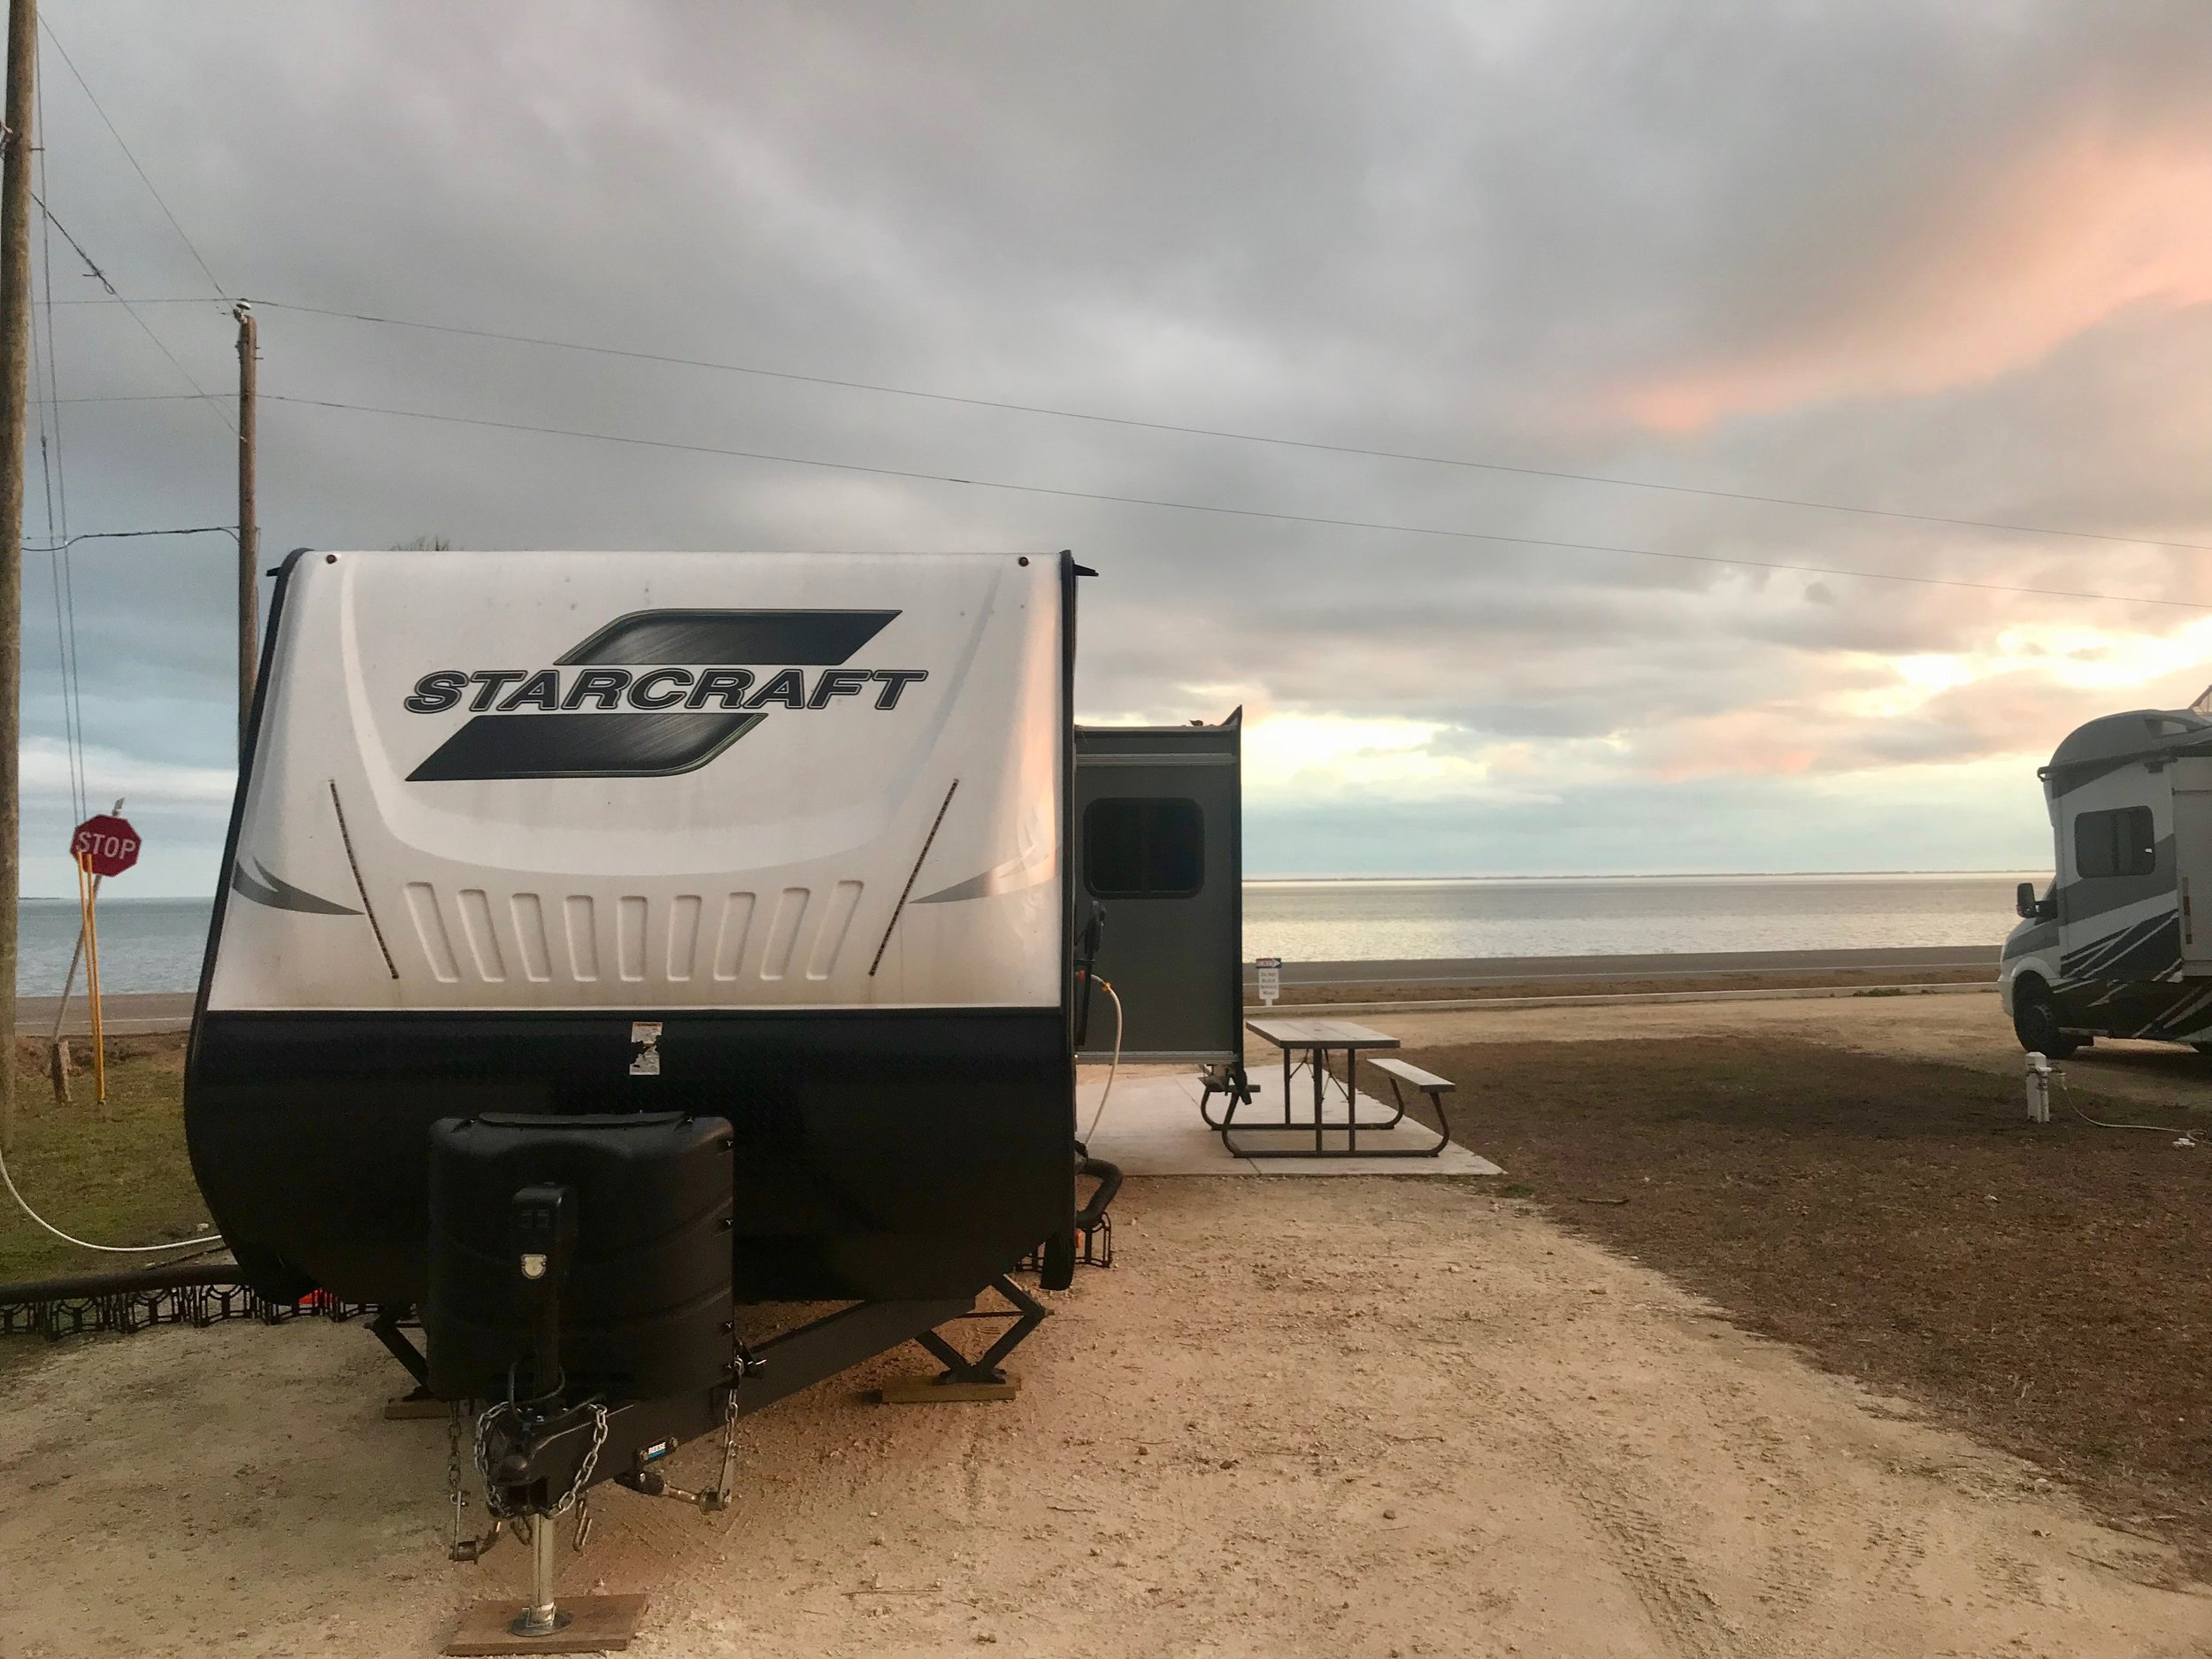 The writer's trailer, parked at a campground on the Gulf of Mexico on the Florida Panhandle.